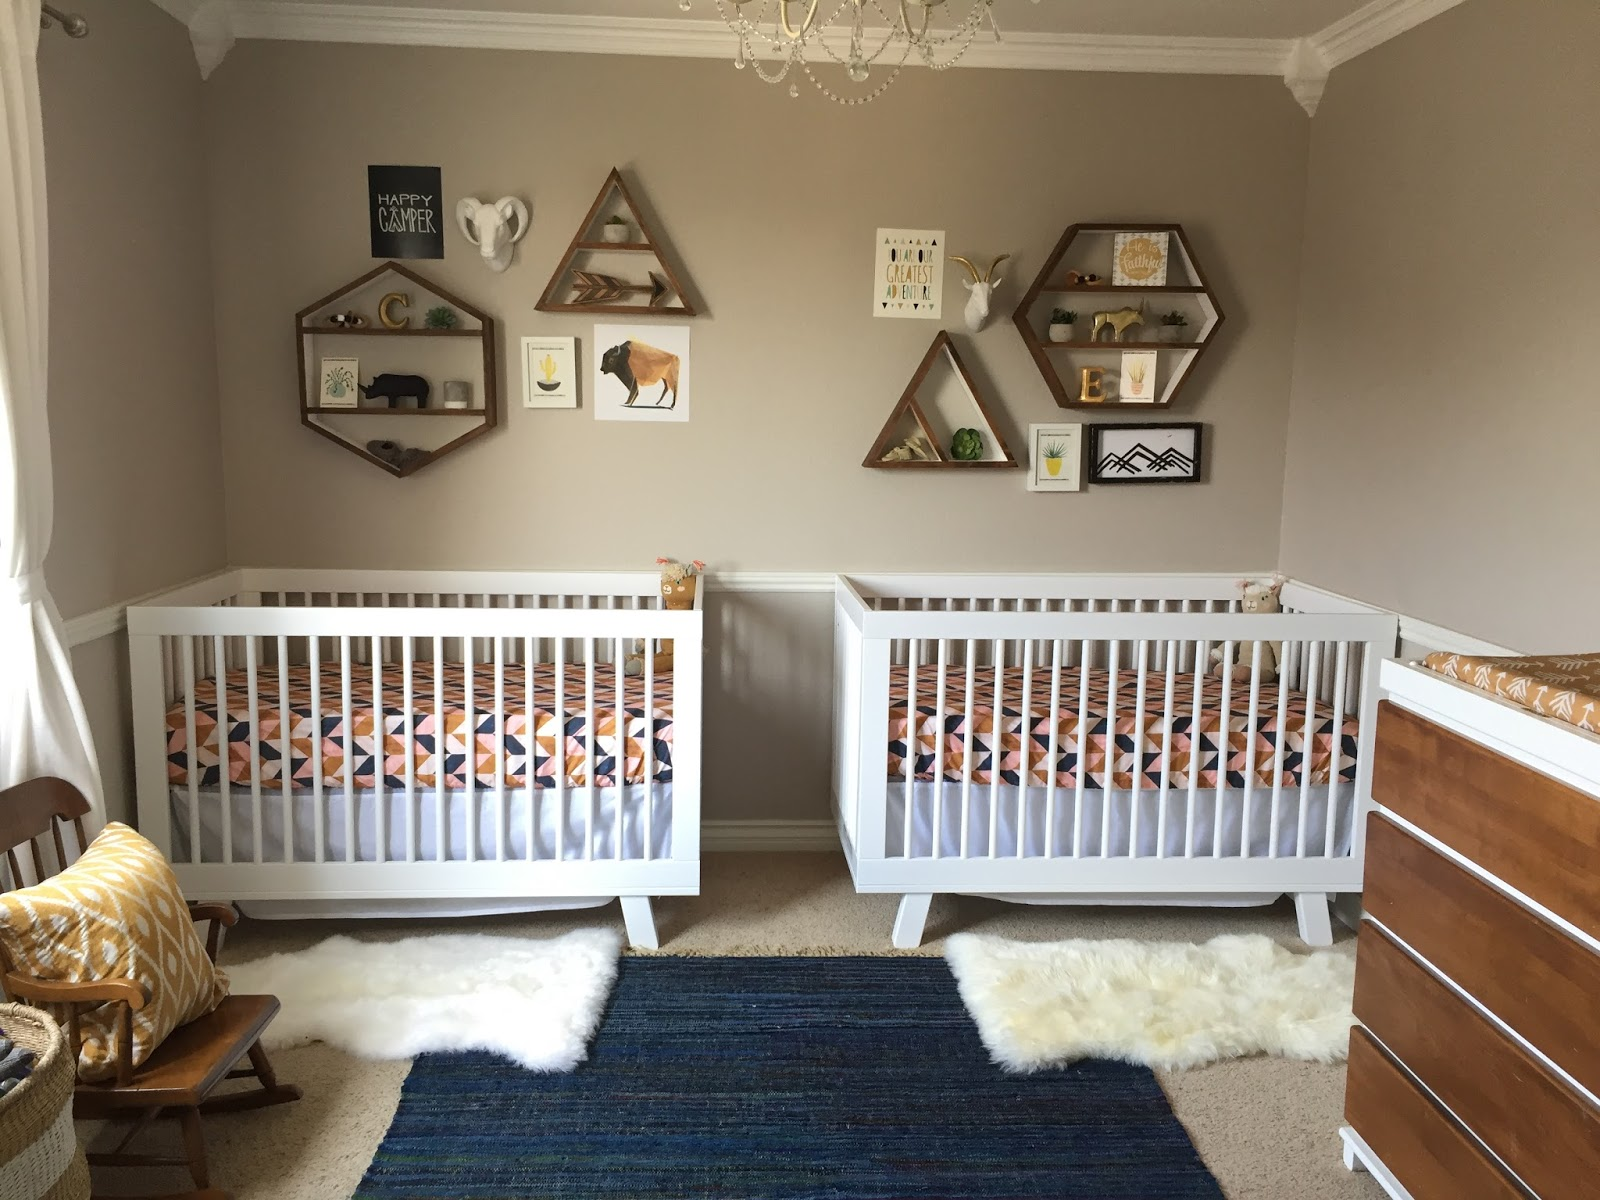 at decor baby twins design your residence bedroom bedding for nursery crib minnesota awesome throughout twin decoration